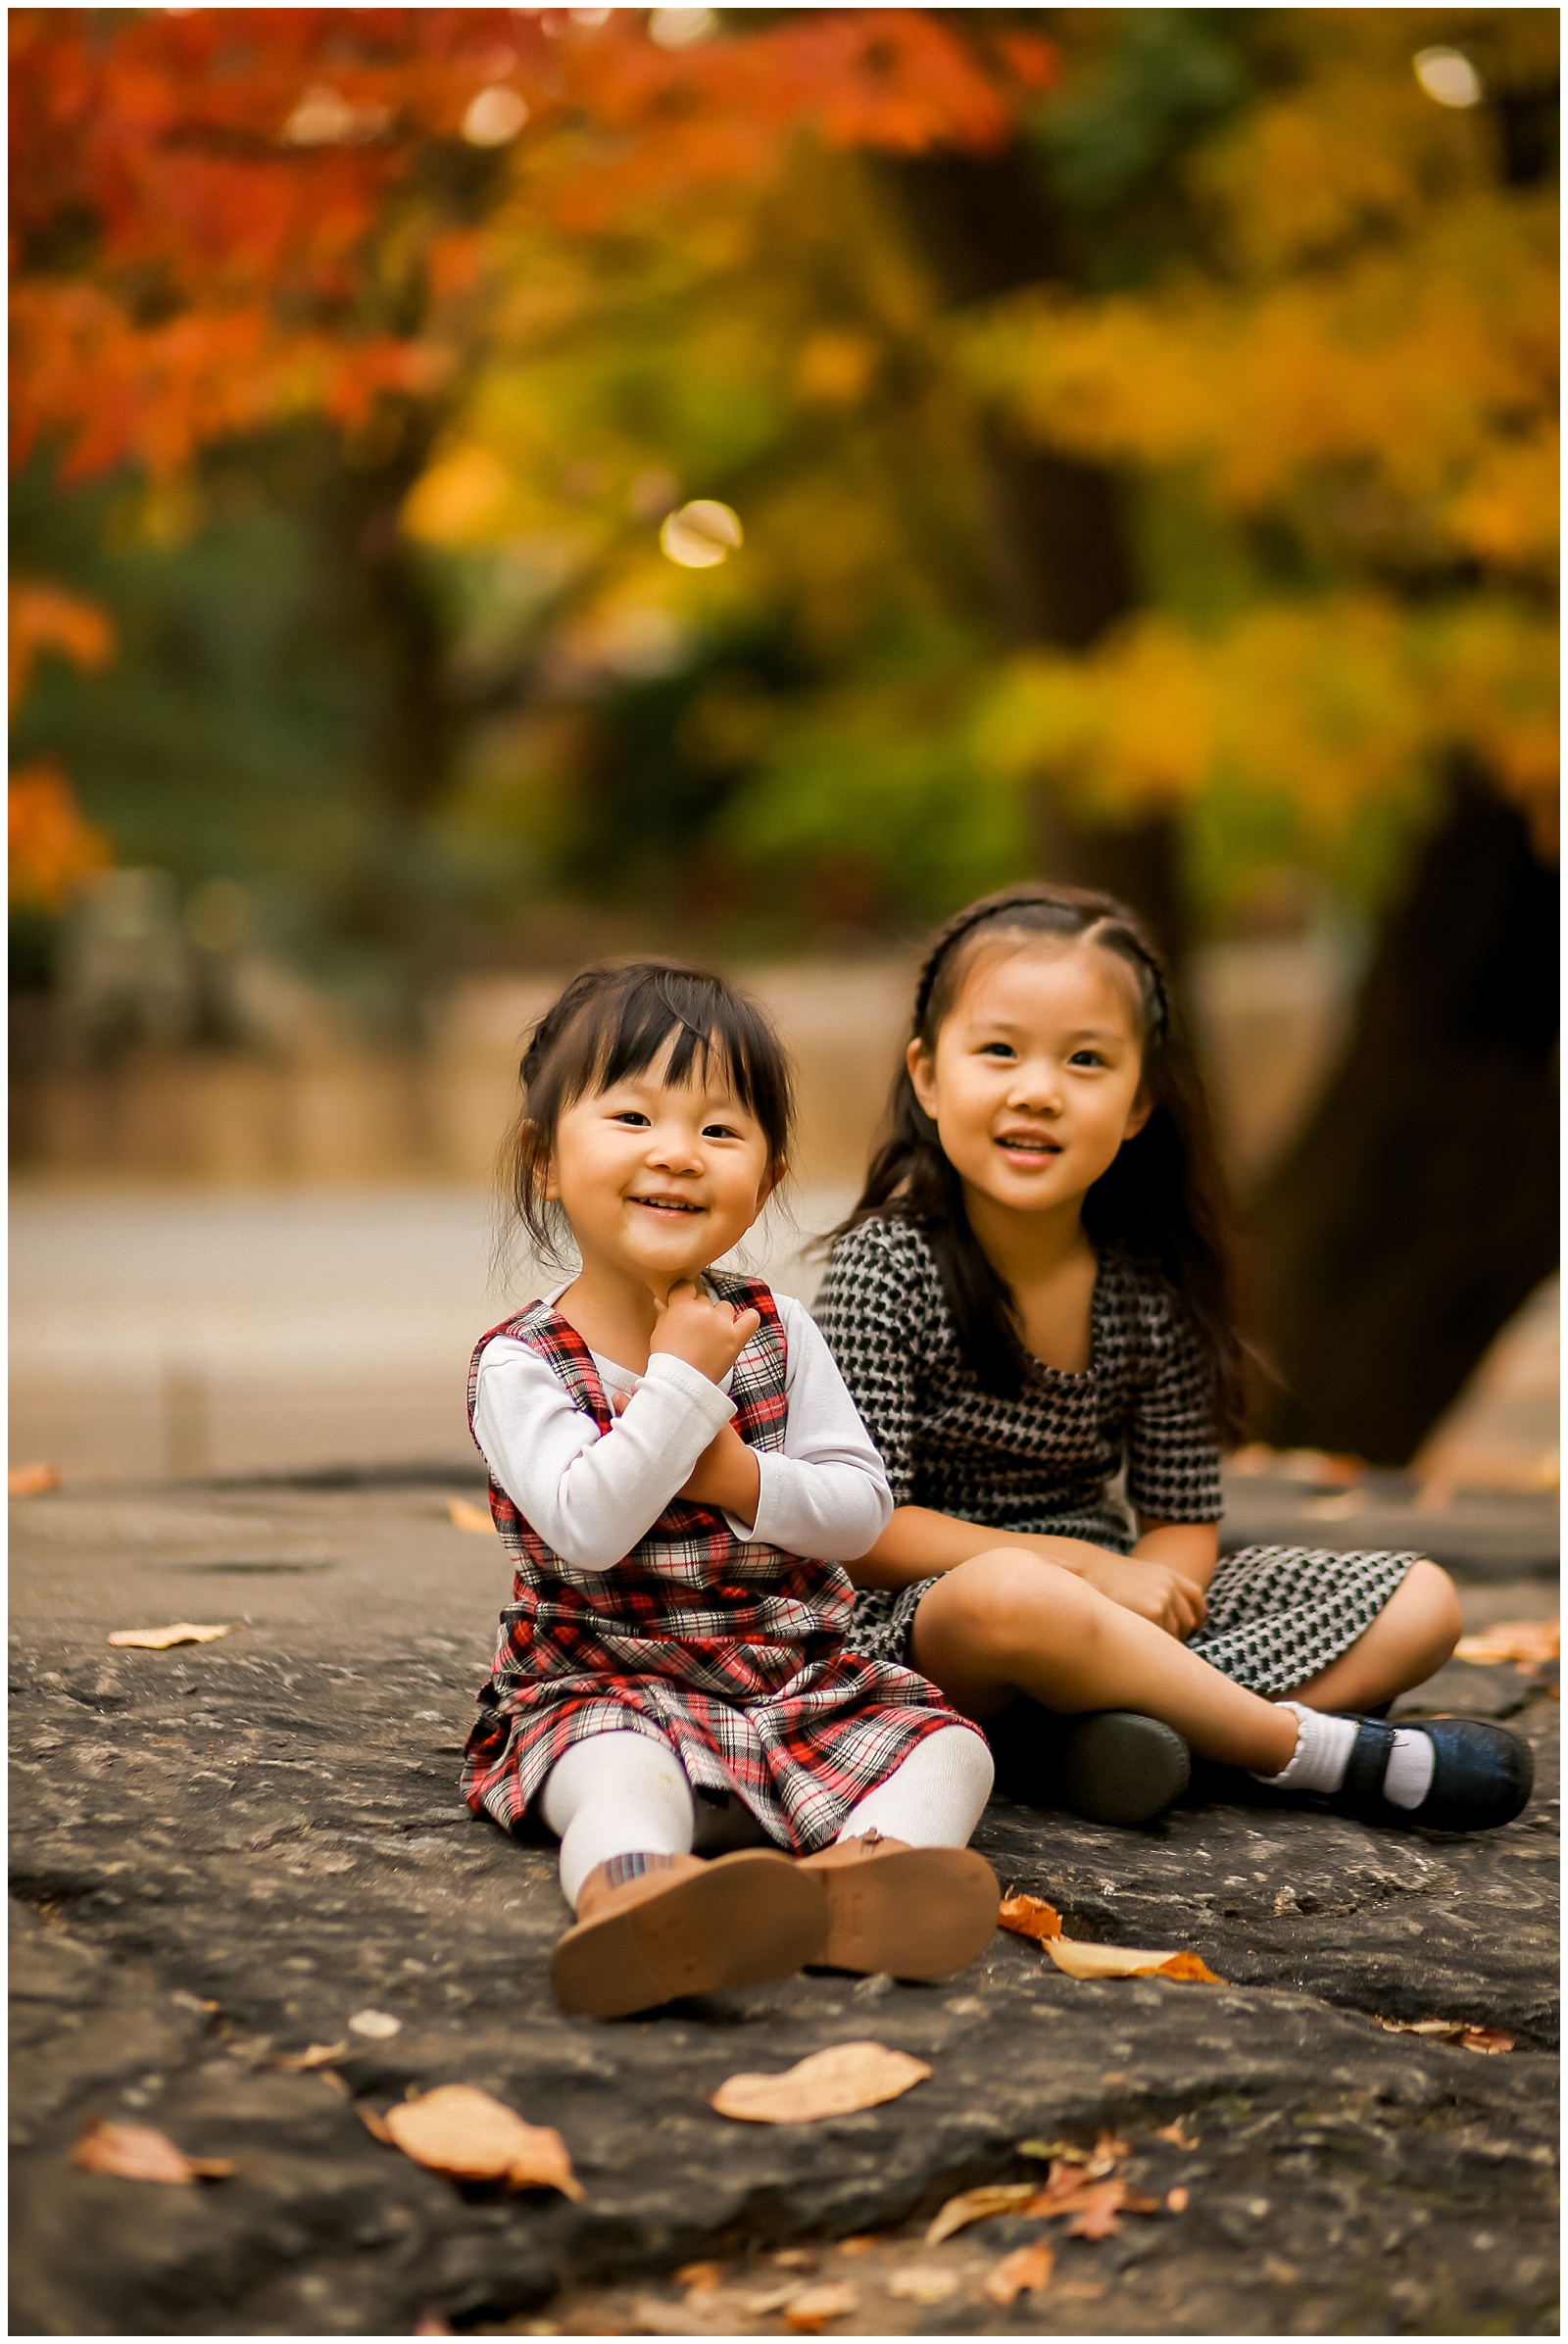 nyc family photographer photoshoot with two sisters in central park